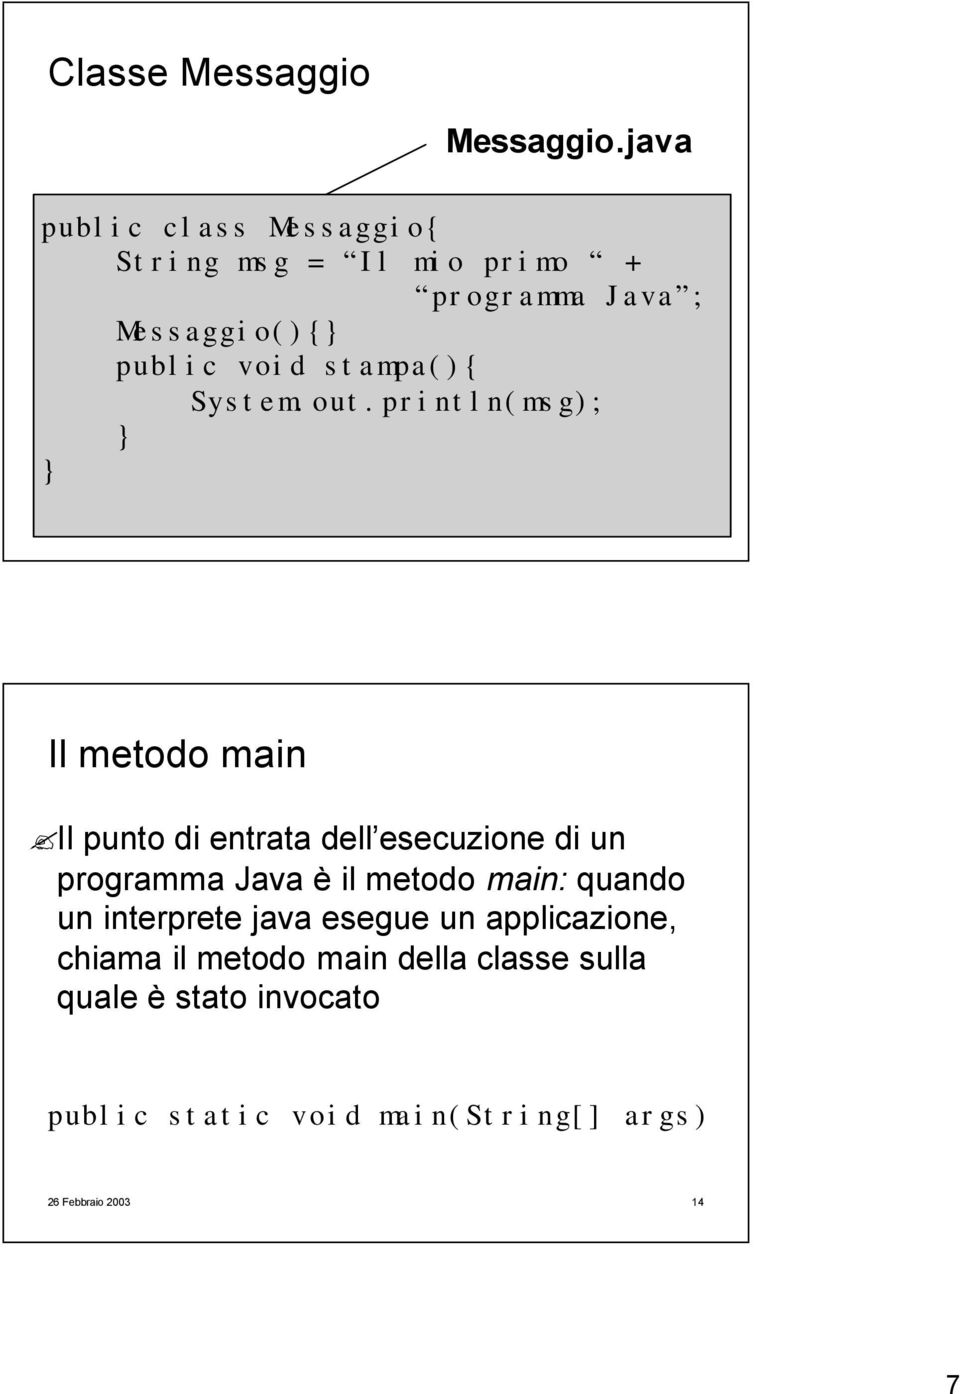 programma Java ; public void stampa(){ public System.out.